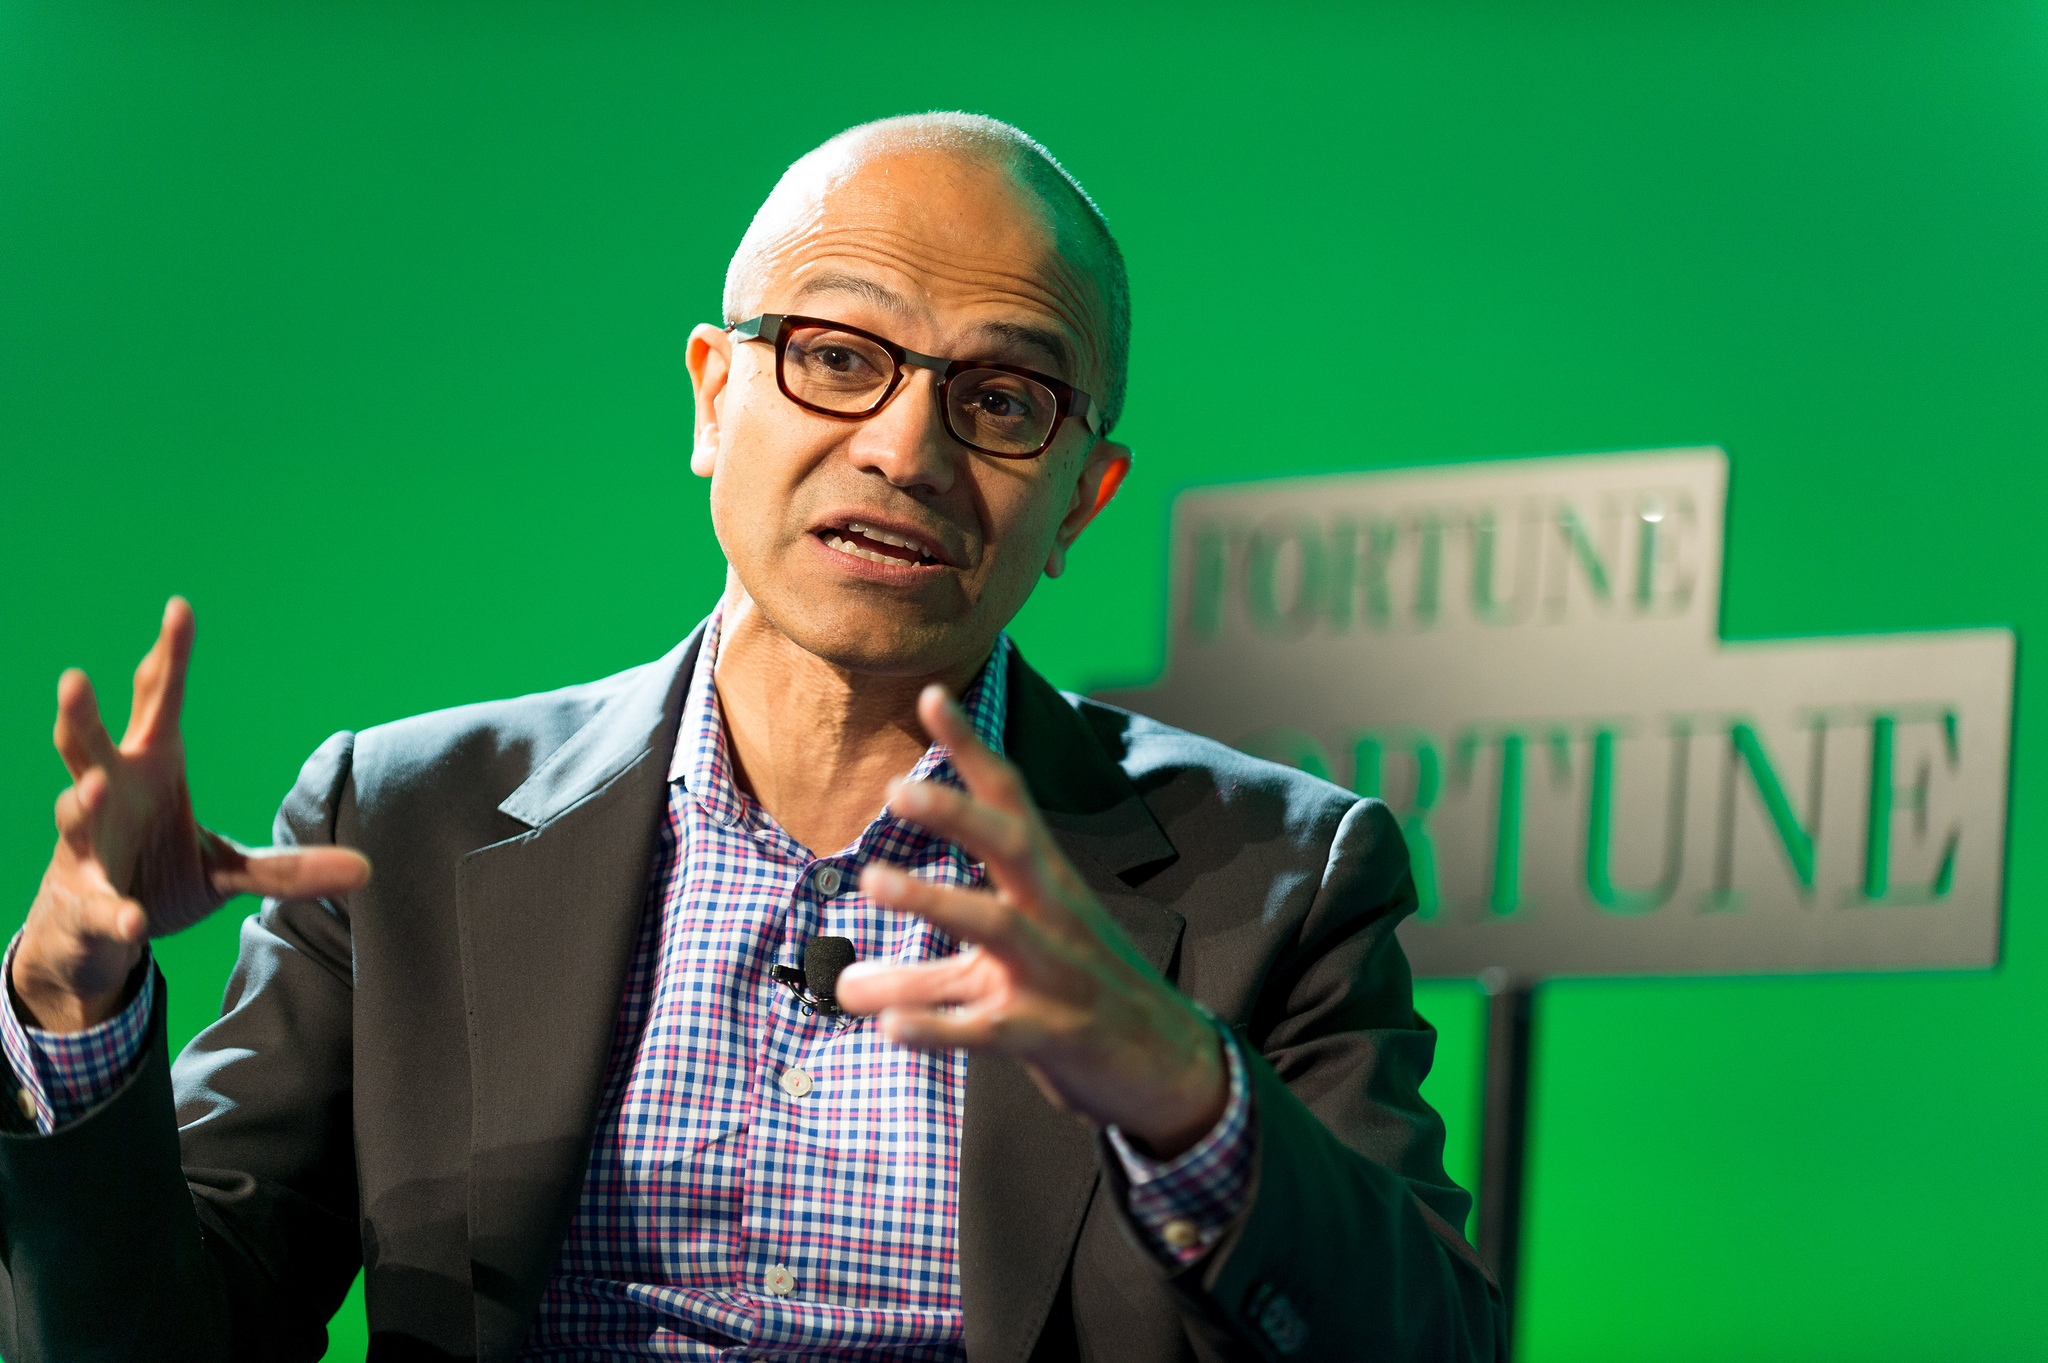 Microsoft CEO Satya Nadella speaks at Fortune Brainstorm Tech in Aspen, Colorado on July 14, 2014.